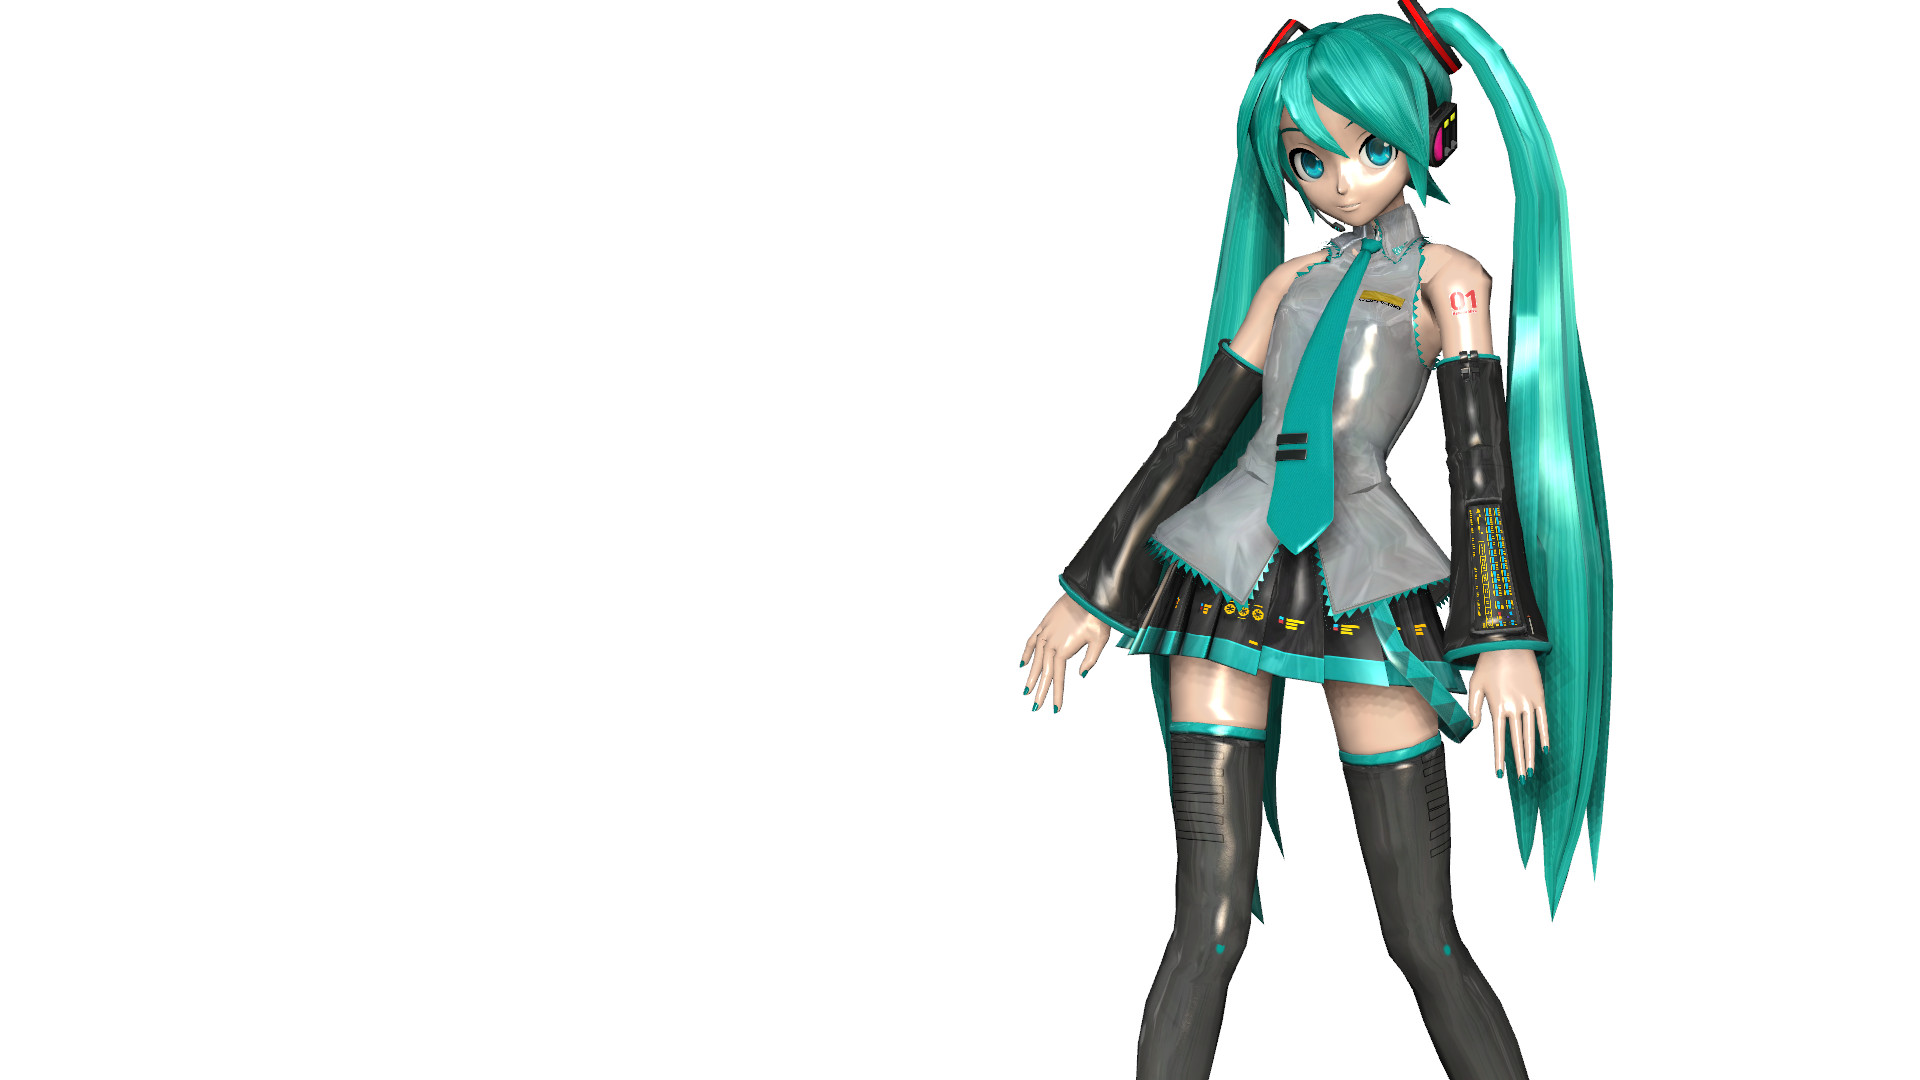 3d mmd hatsune miku loses her gym clothes in girls 2